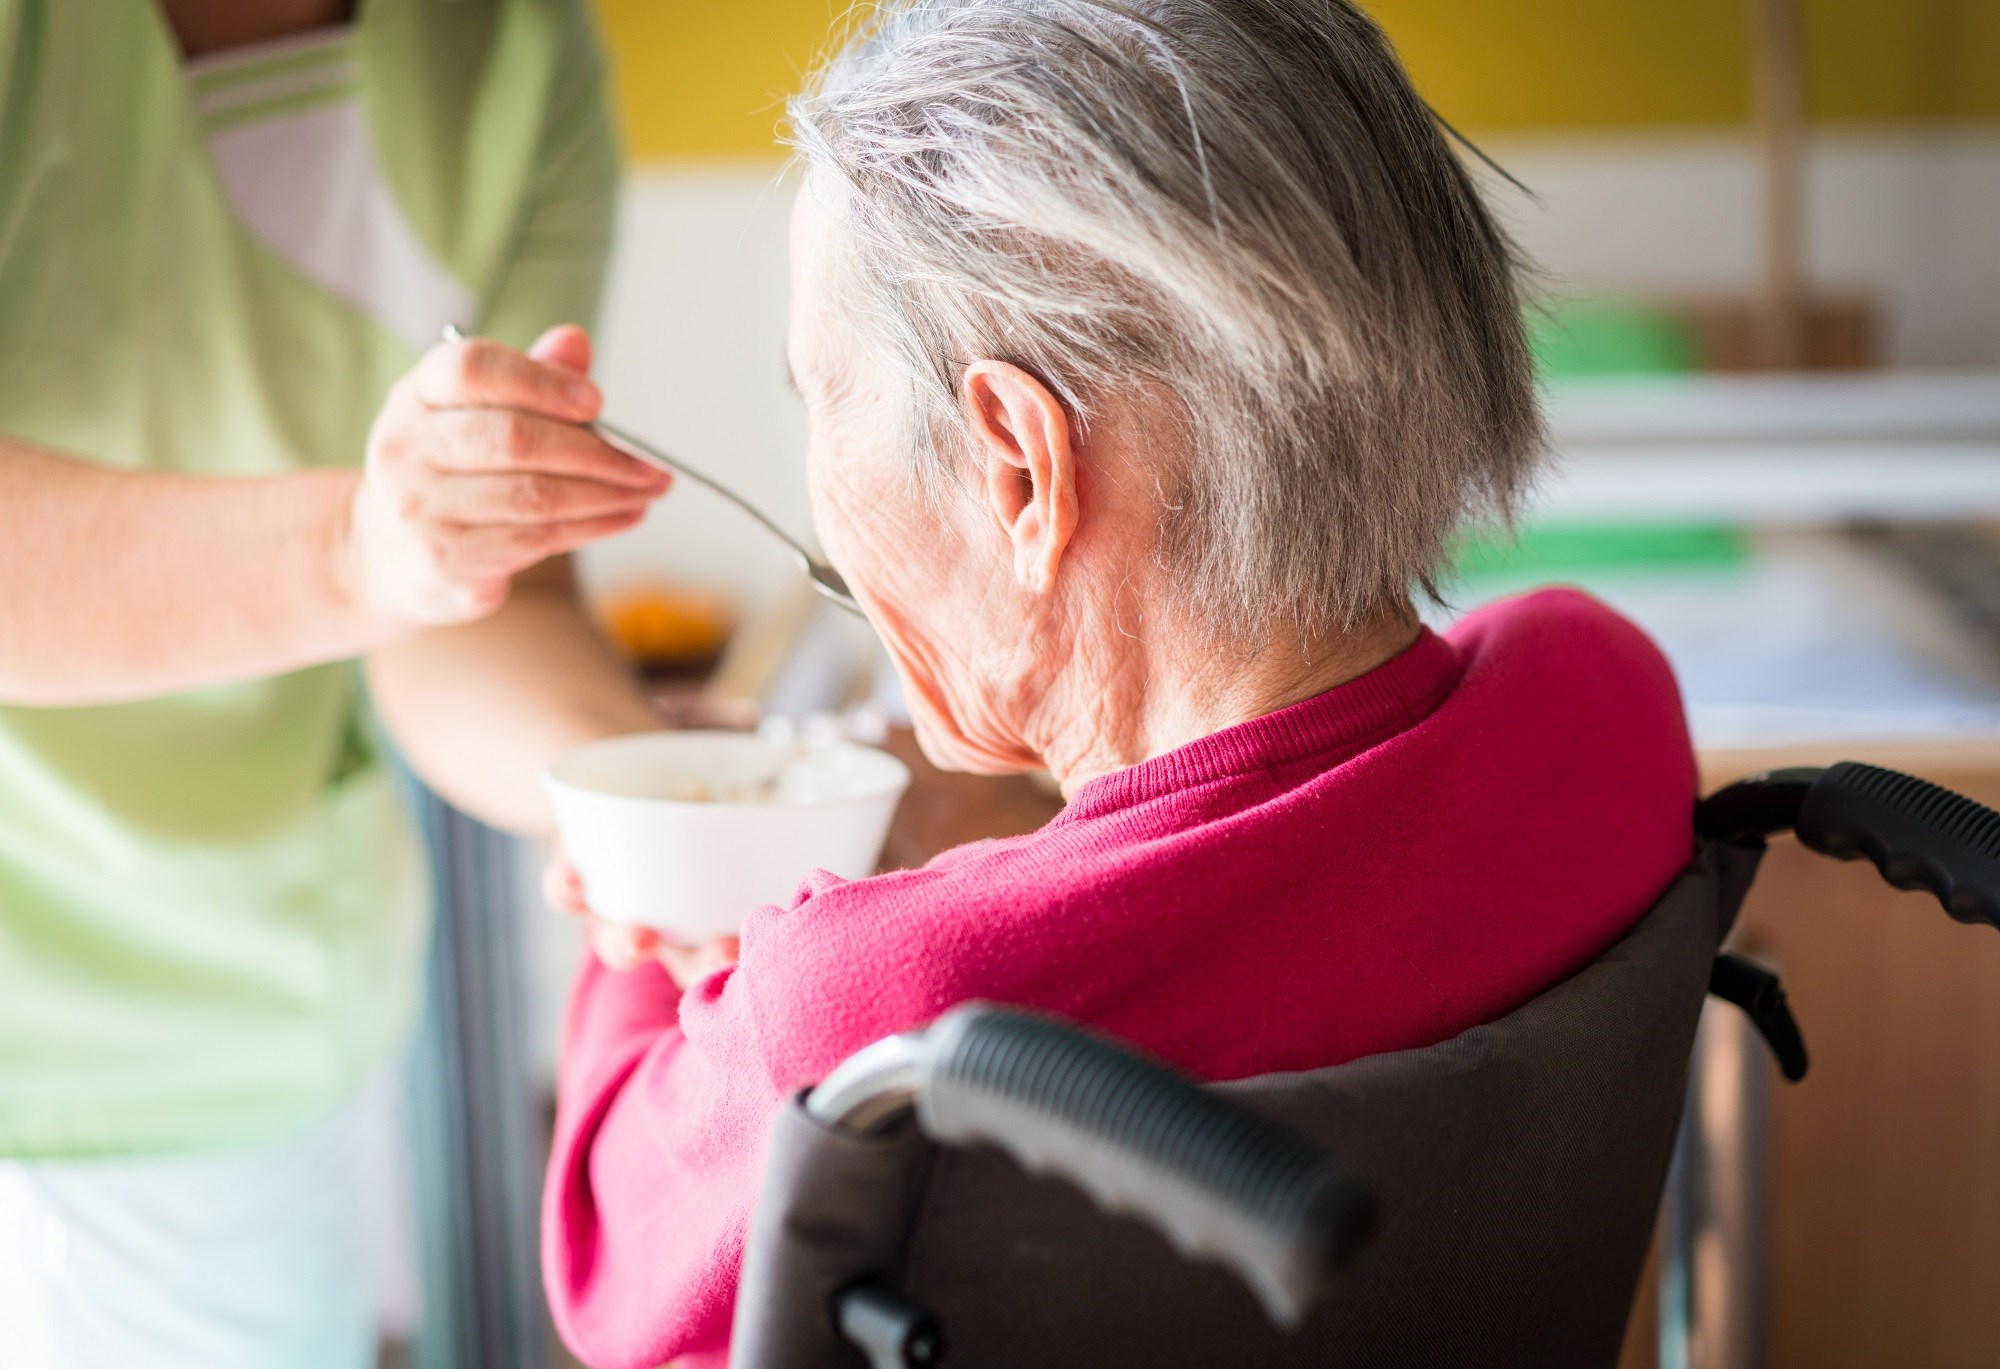 Physical Frailty Associated With Symptoms of Dementia, Caregiver Burden in Alzheimer Disease